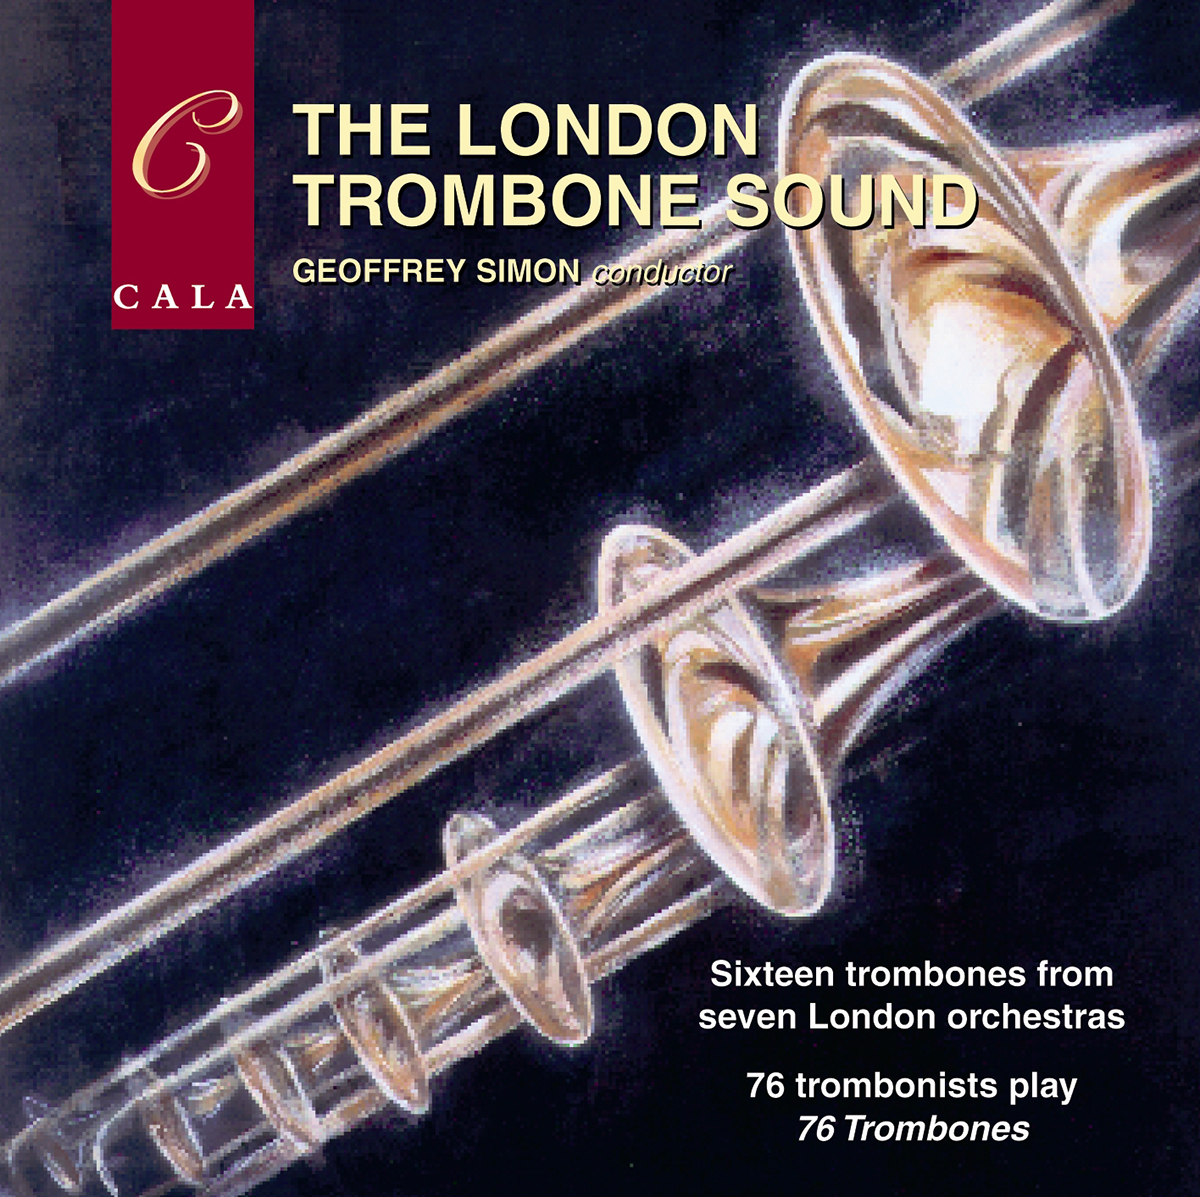 CD The London Trombone Sound